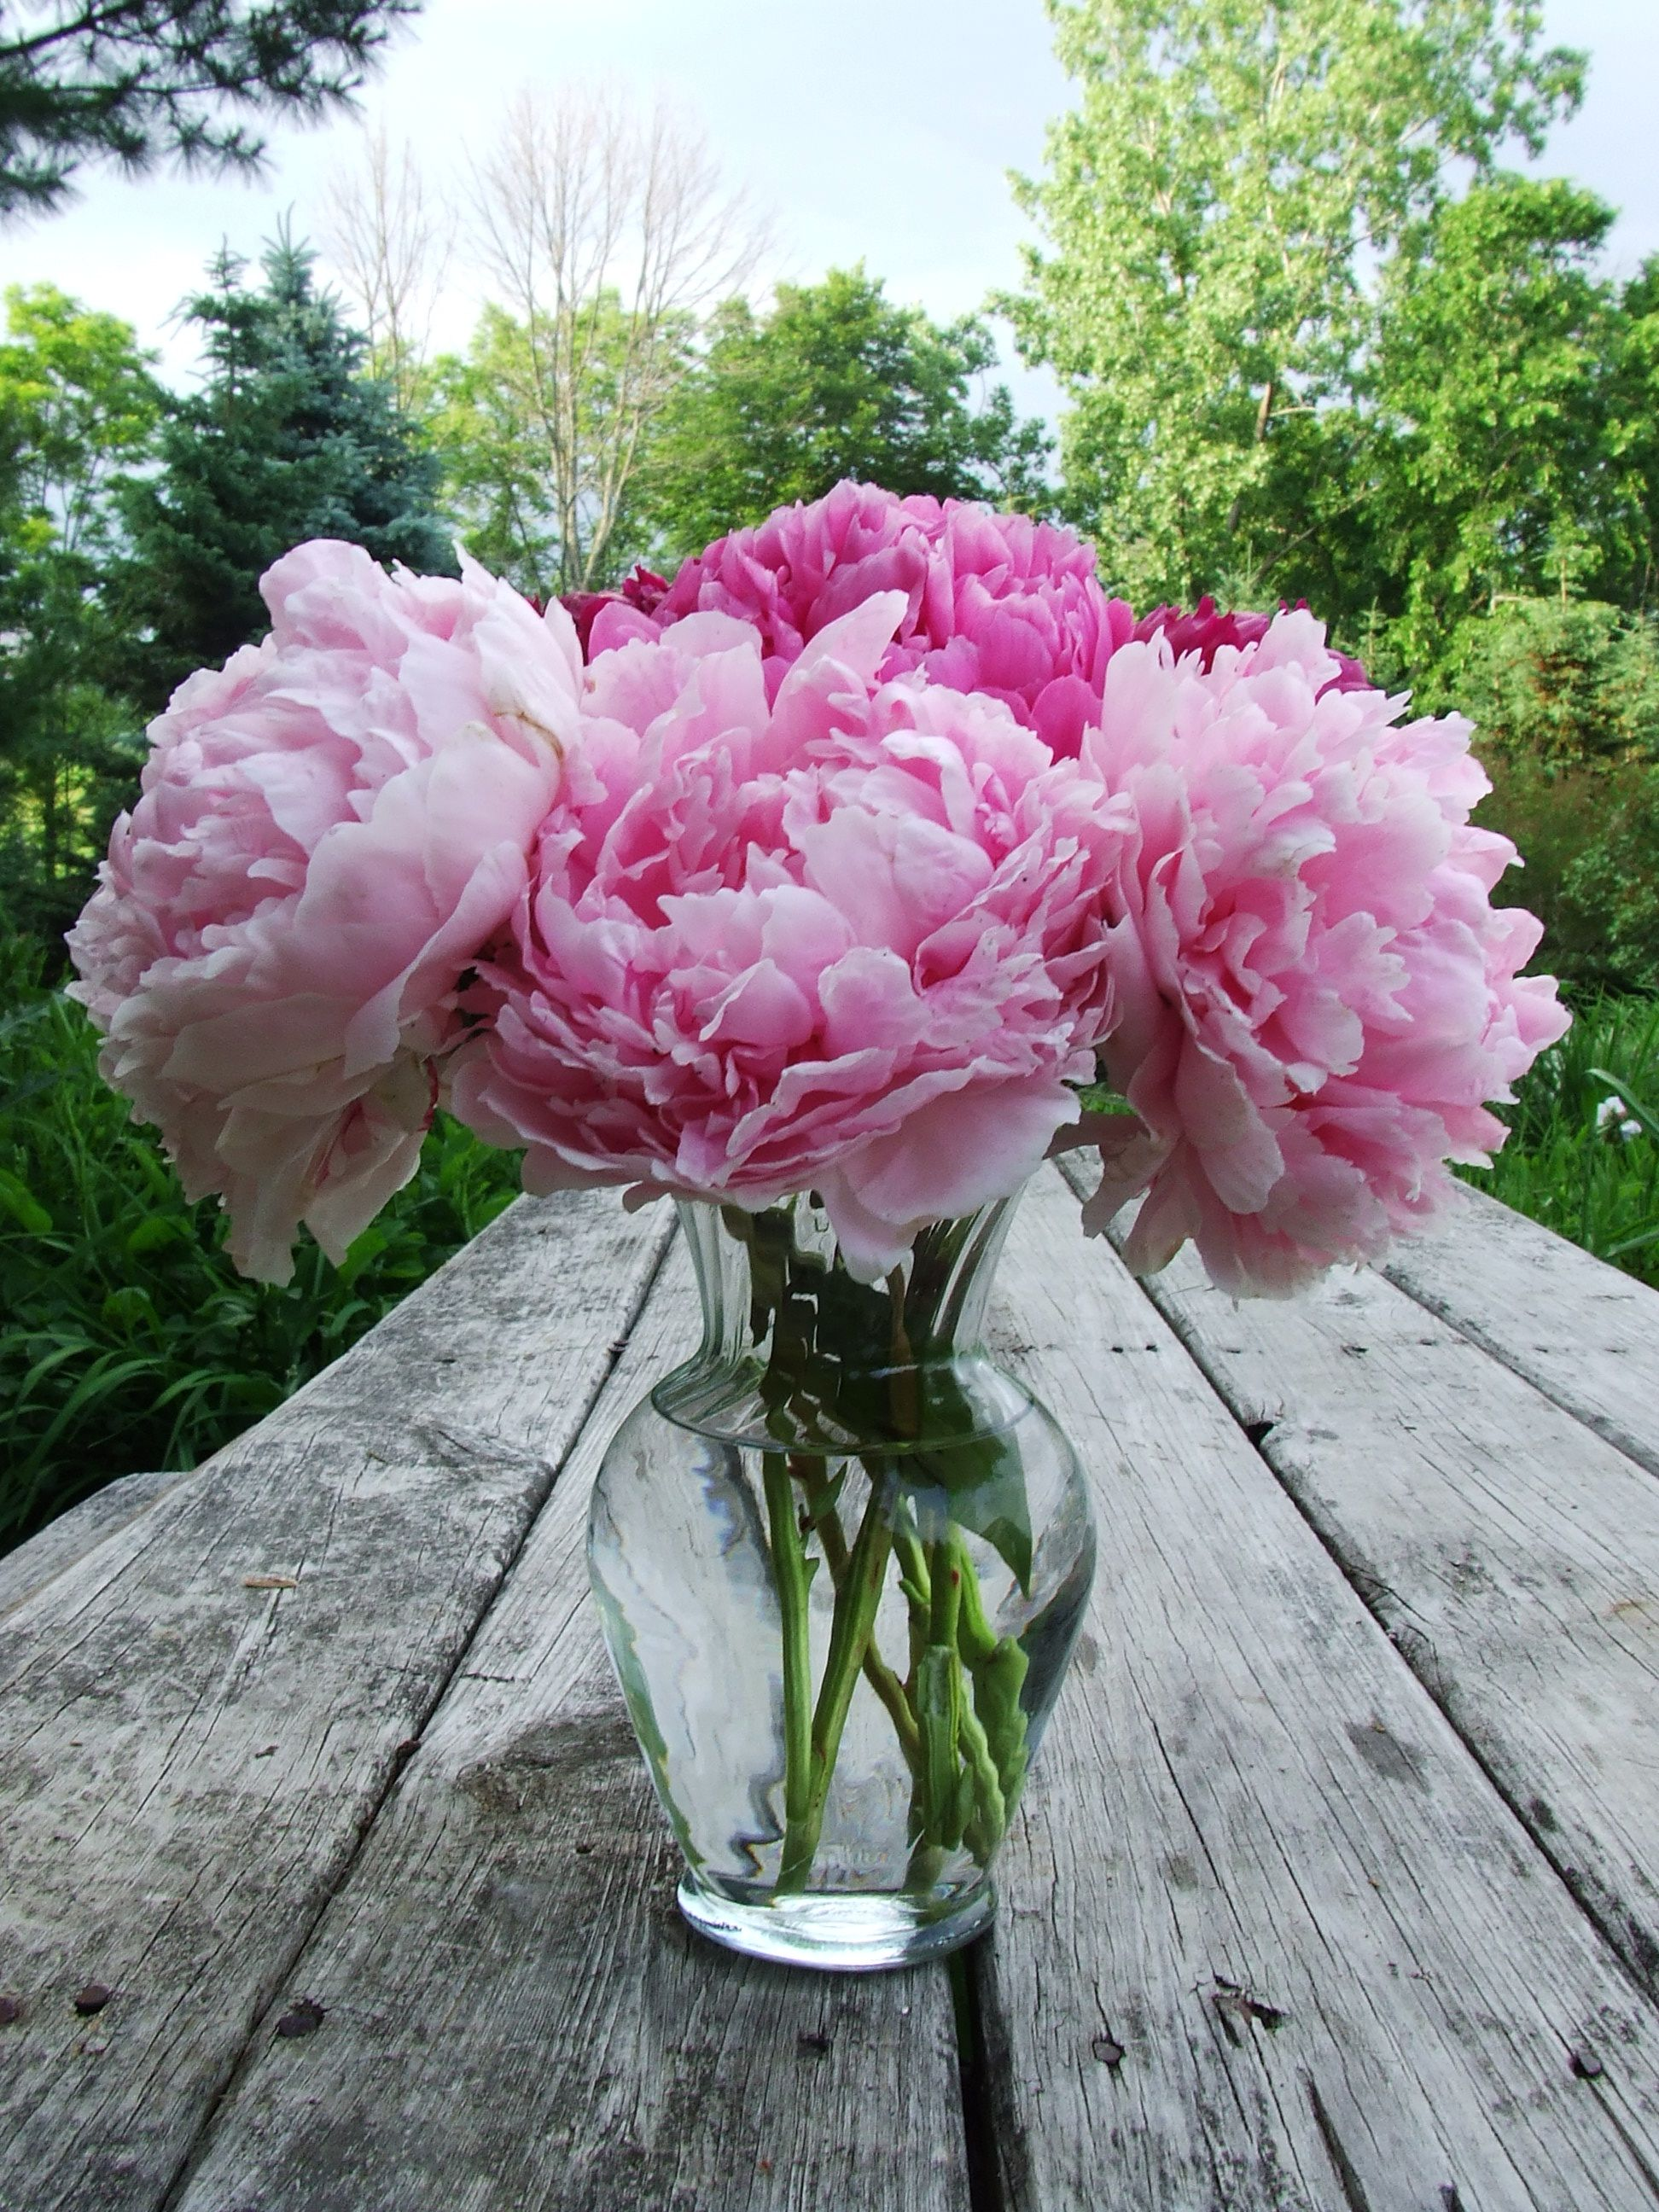 10 things every fashionable woman should have by 30 - How To Cut Peonies